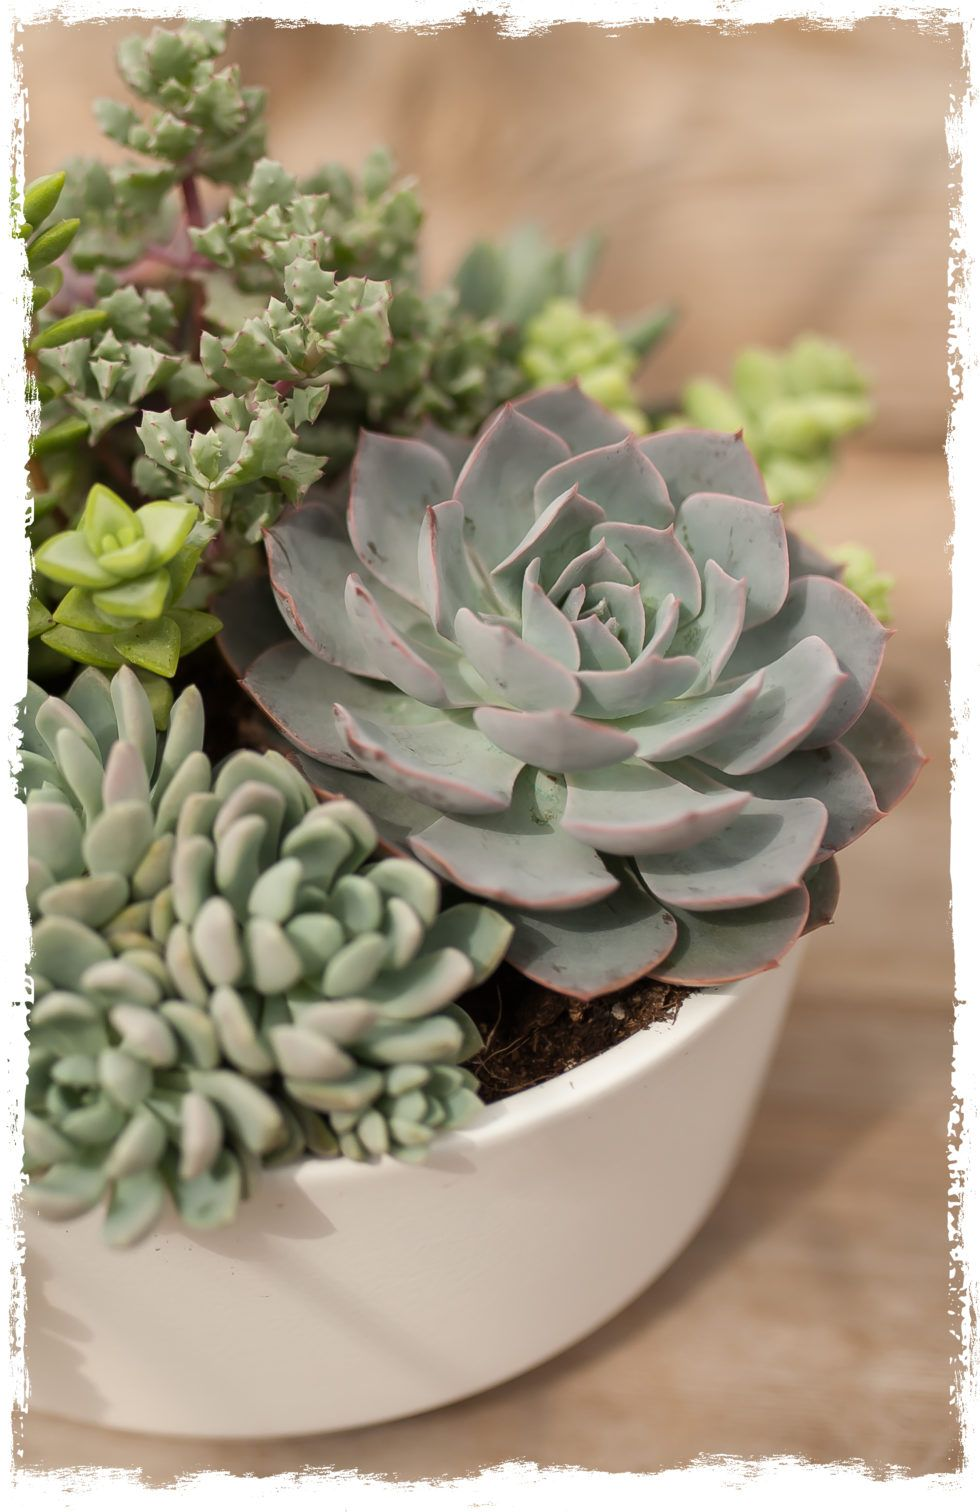 Succulent Lookbook West Coast Gardens Surrey Bc We Grow All Our Own Succulents In House Surreybc Vancouver